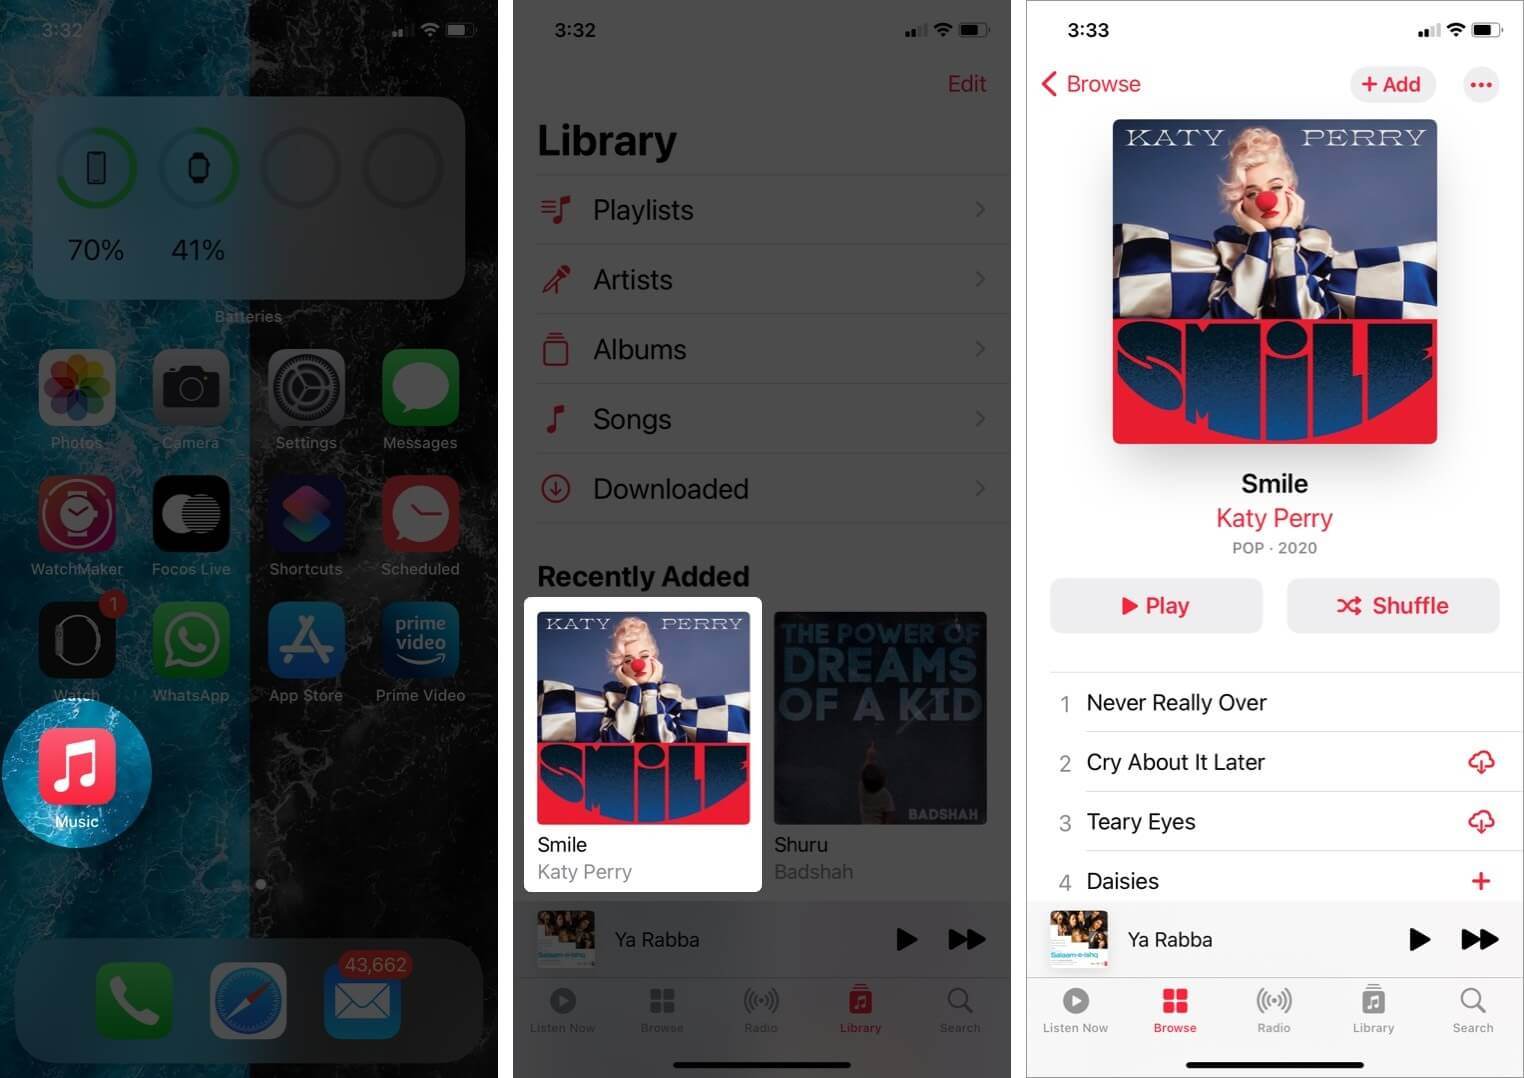 open music app and open song and long press on song on iphone